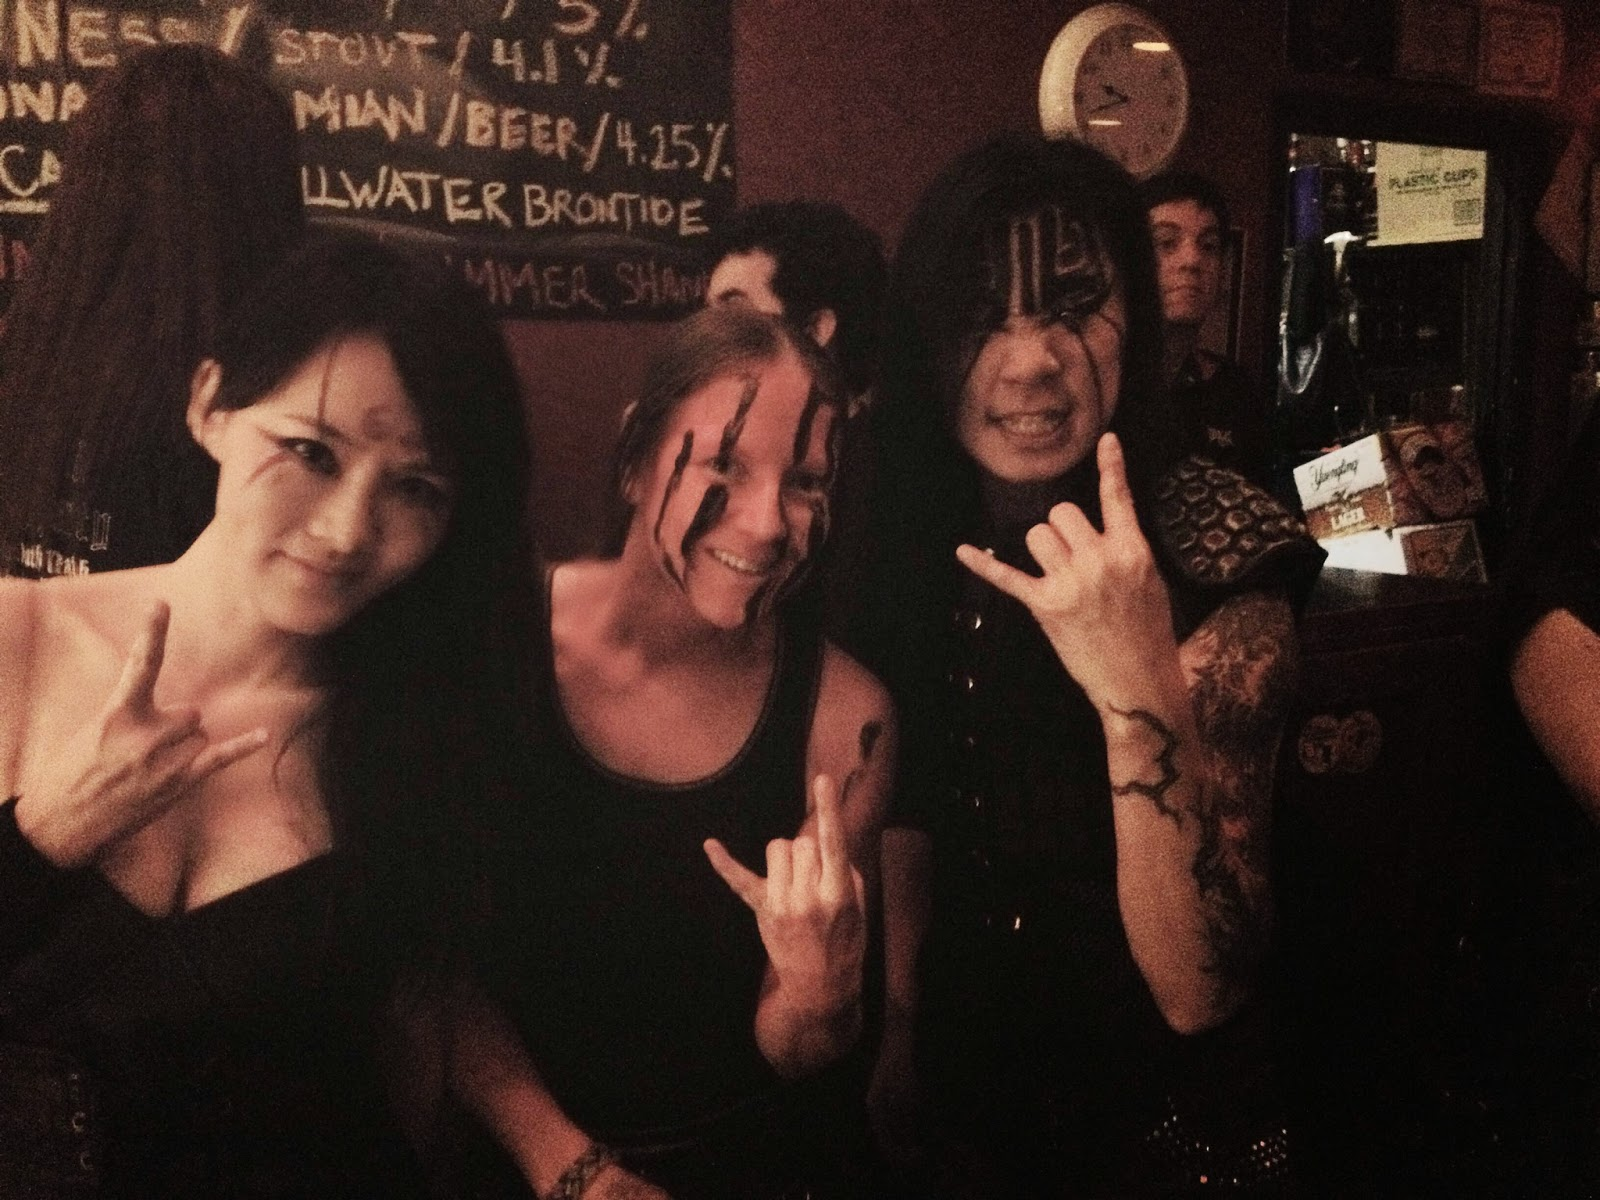 ChthoniC's Freddy and Doris